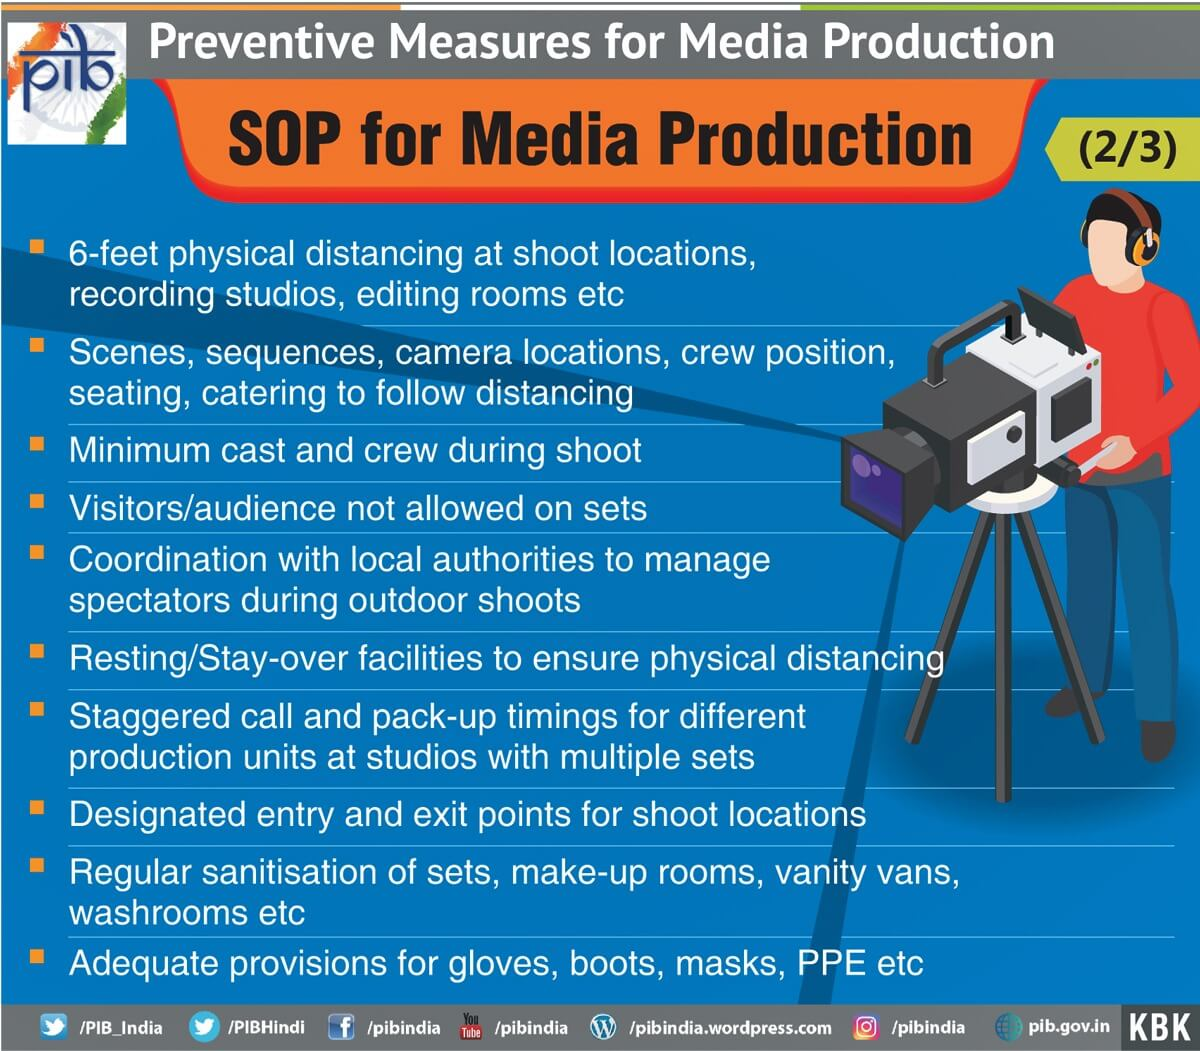 Standard Operating Procedure (SOP) Work in the Media Production Industry 2